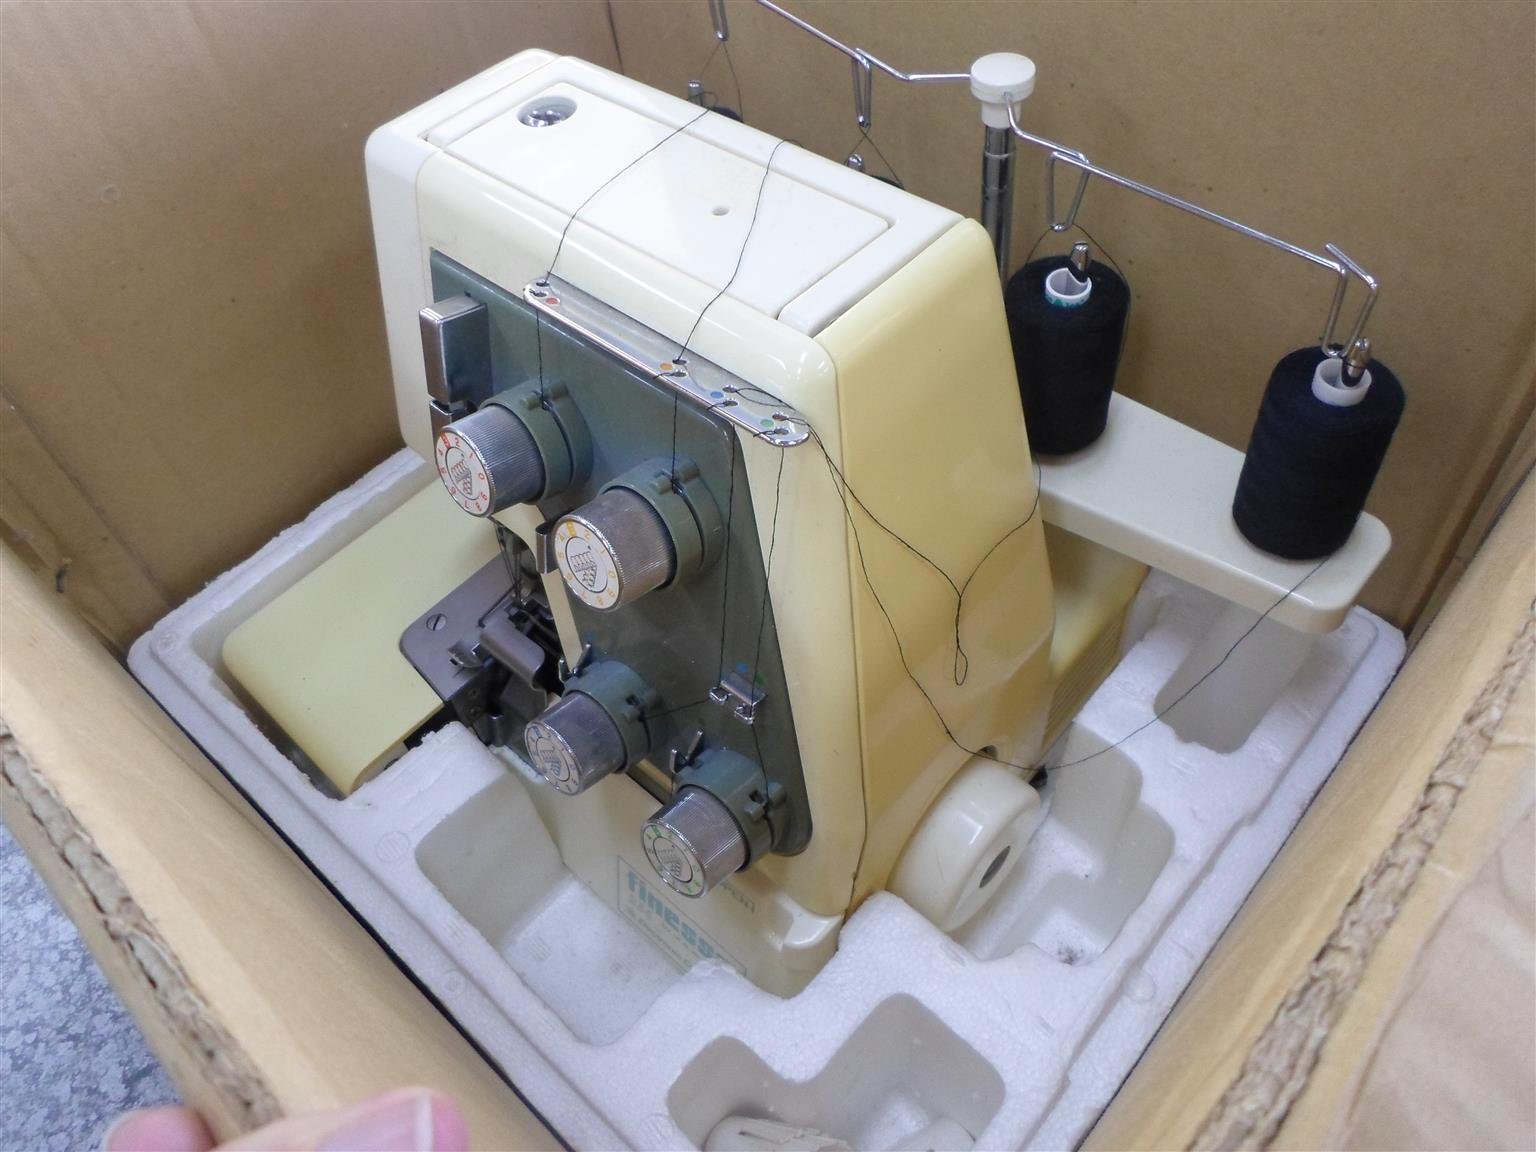 Finess 234 by Janome Sewing Machine